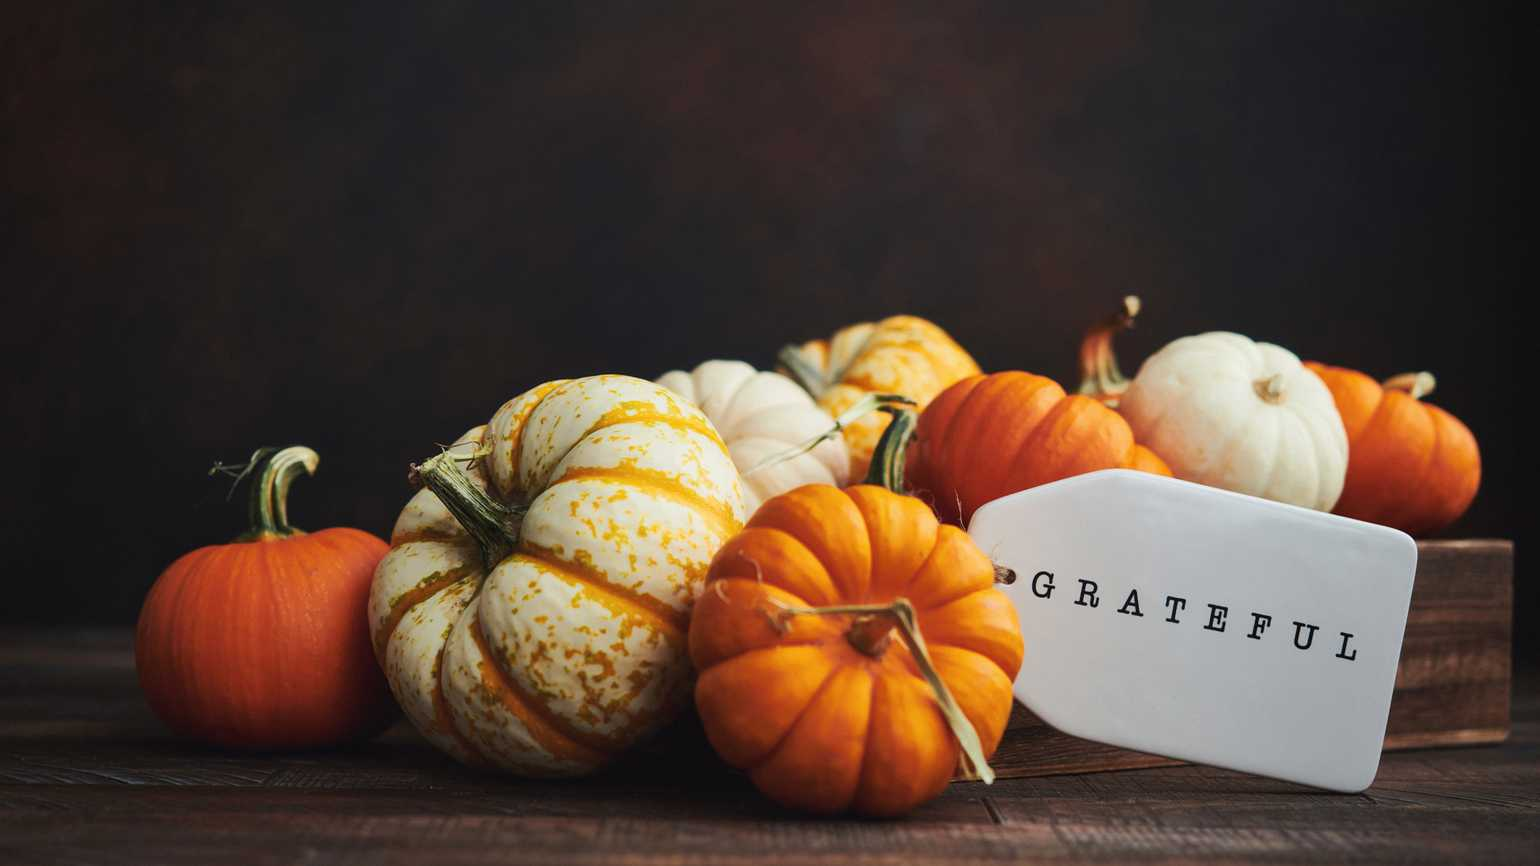 Pumpkins and gourds with a 'grateful' tag; Getty Images